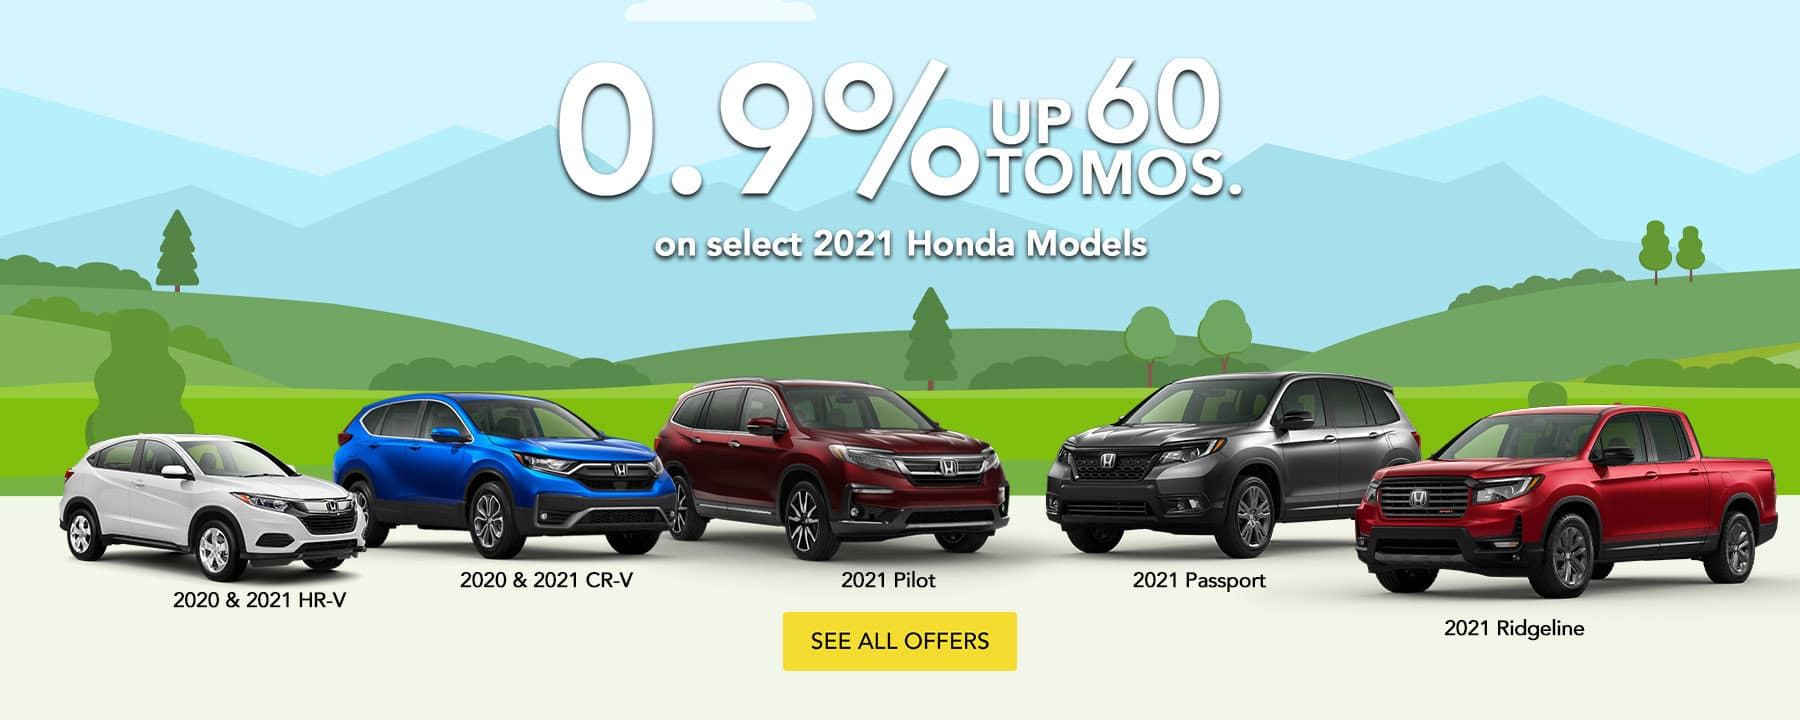 0.9% APR up to 60 months on slect 2021 Honda models. See all offers!